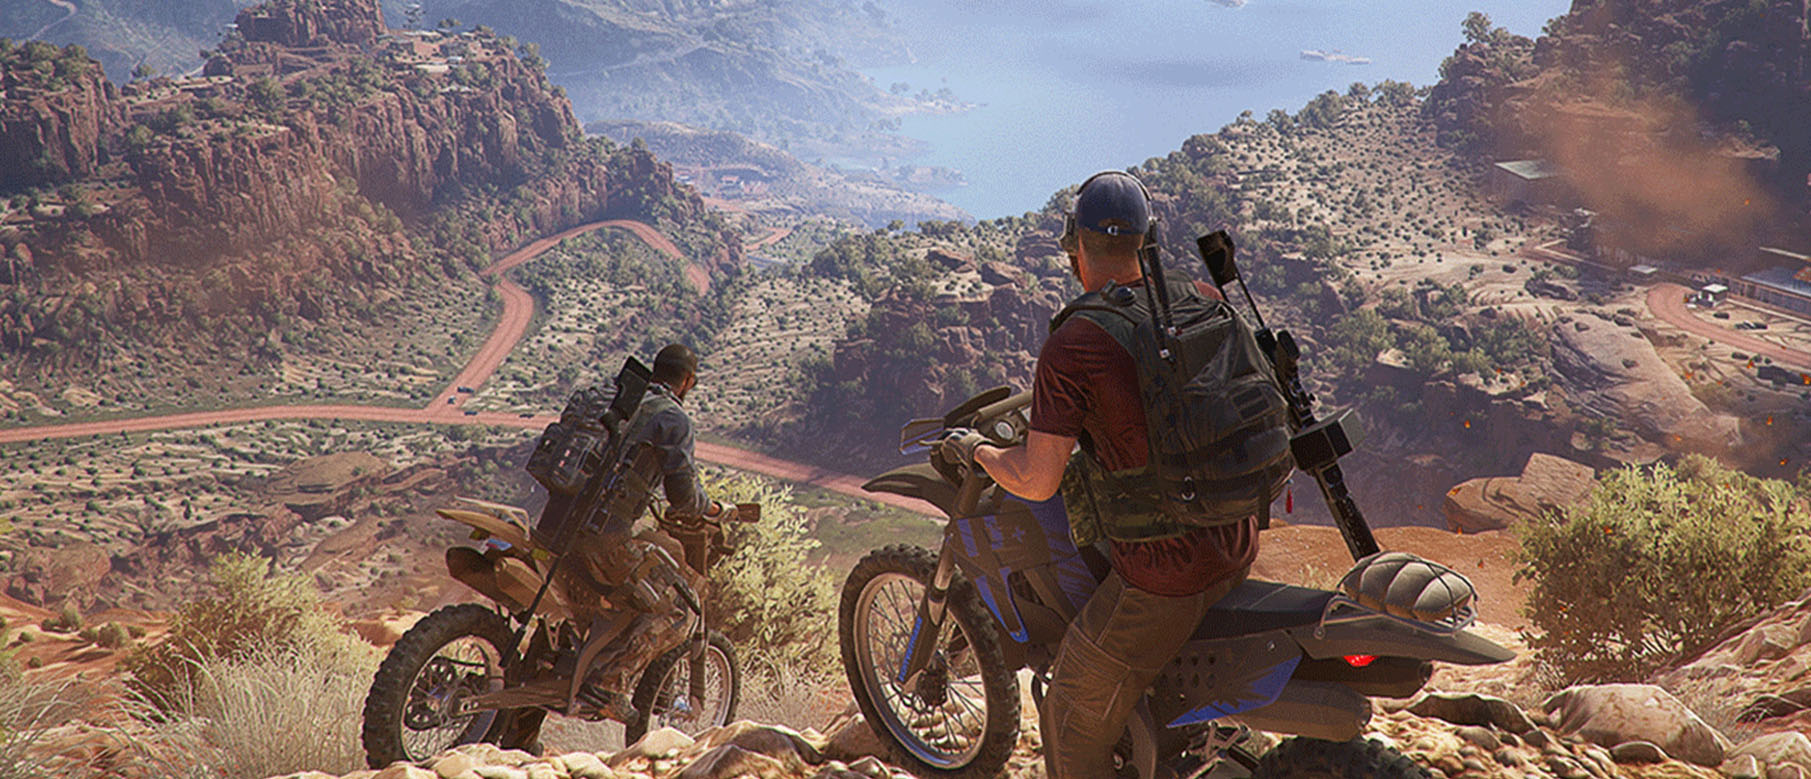 Изображение к Пора присоединятся к бете Ghost Recon: Wildlands